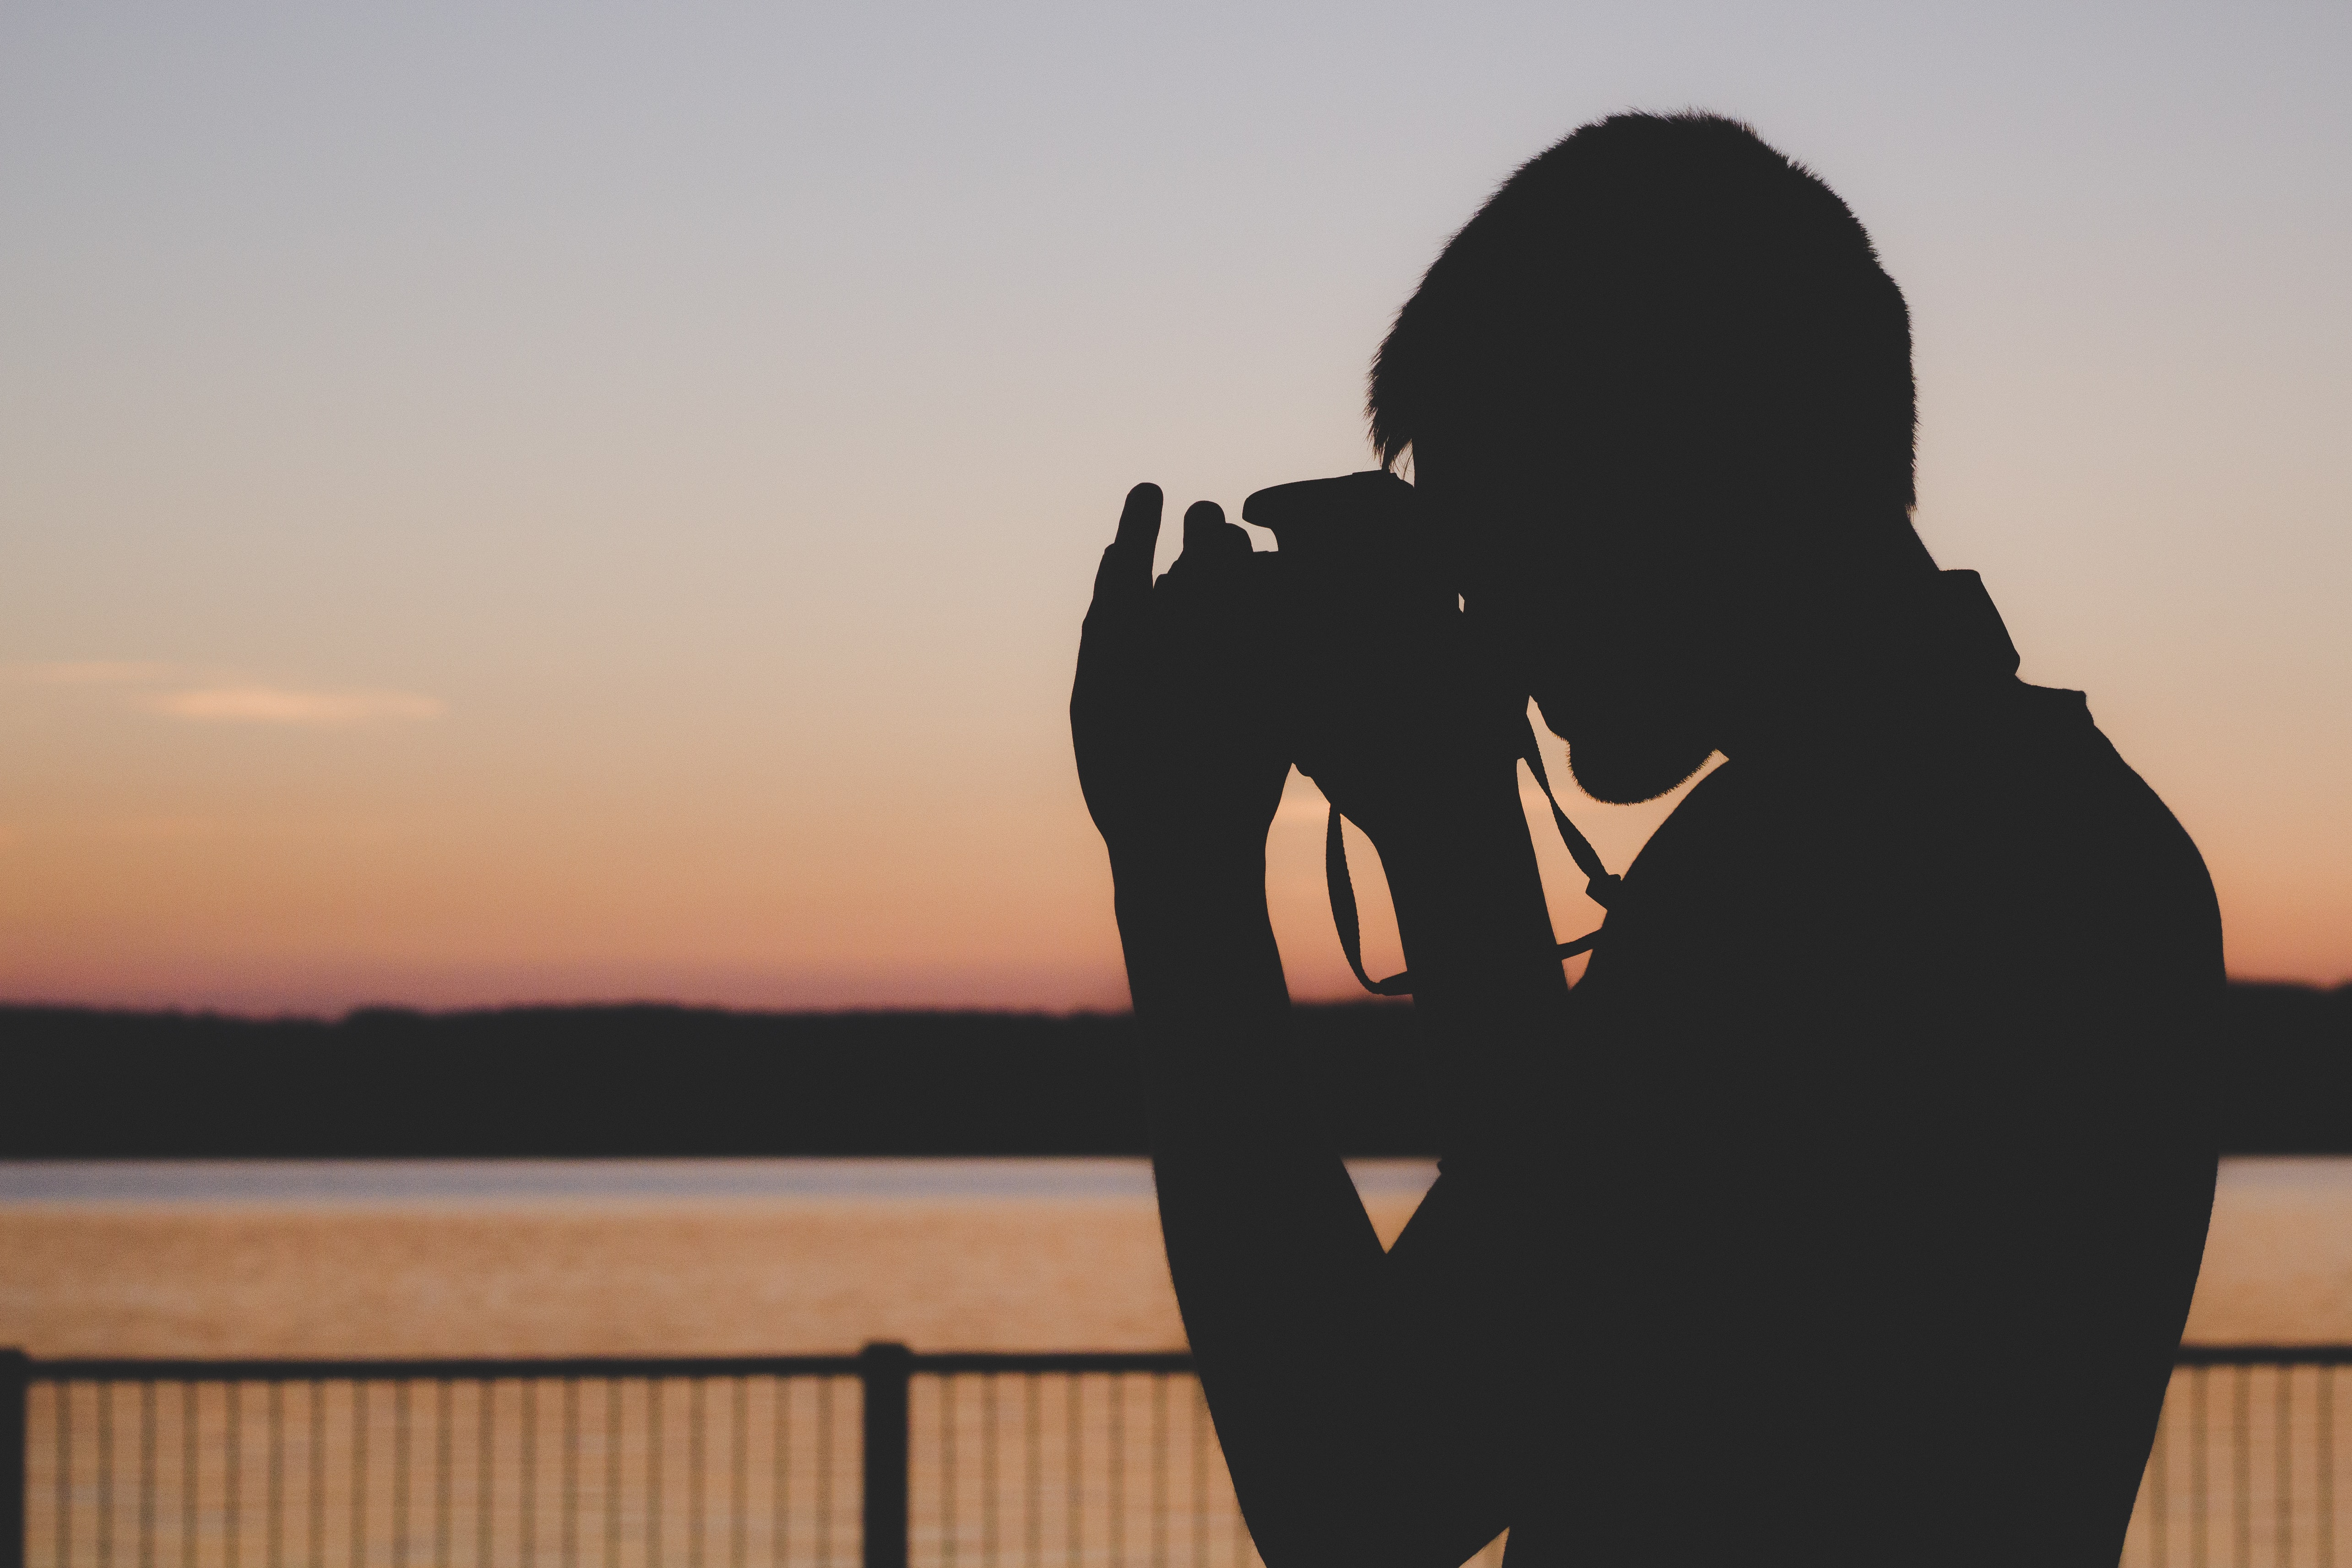 silhouette of man using camera near balustrade during sunset